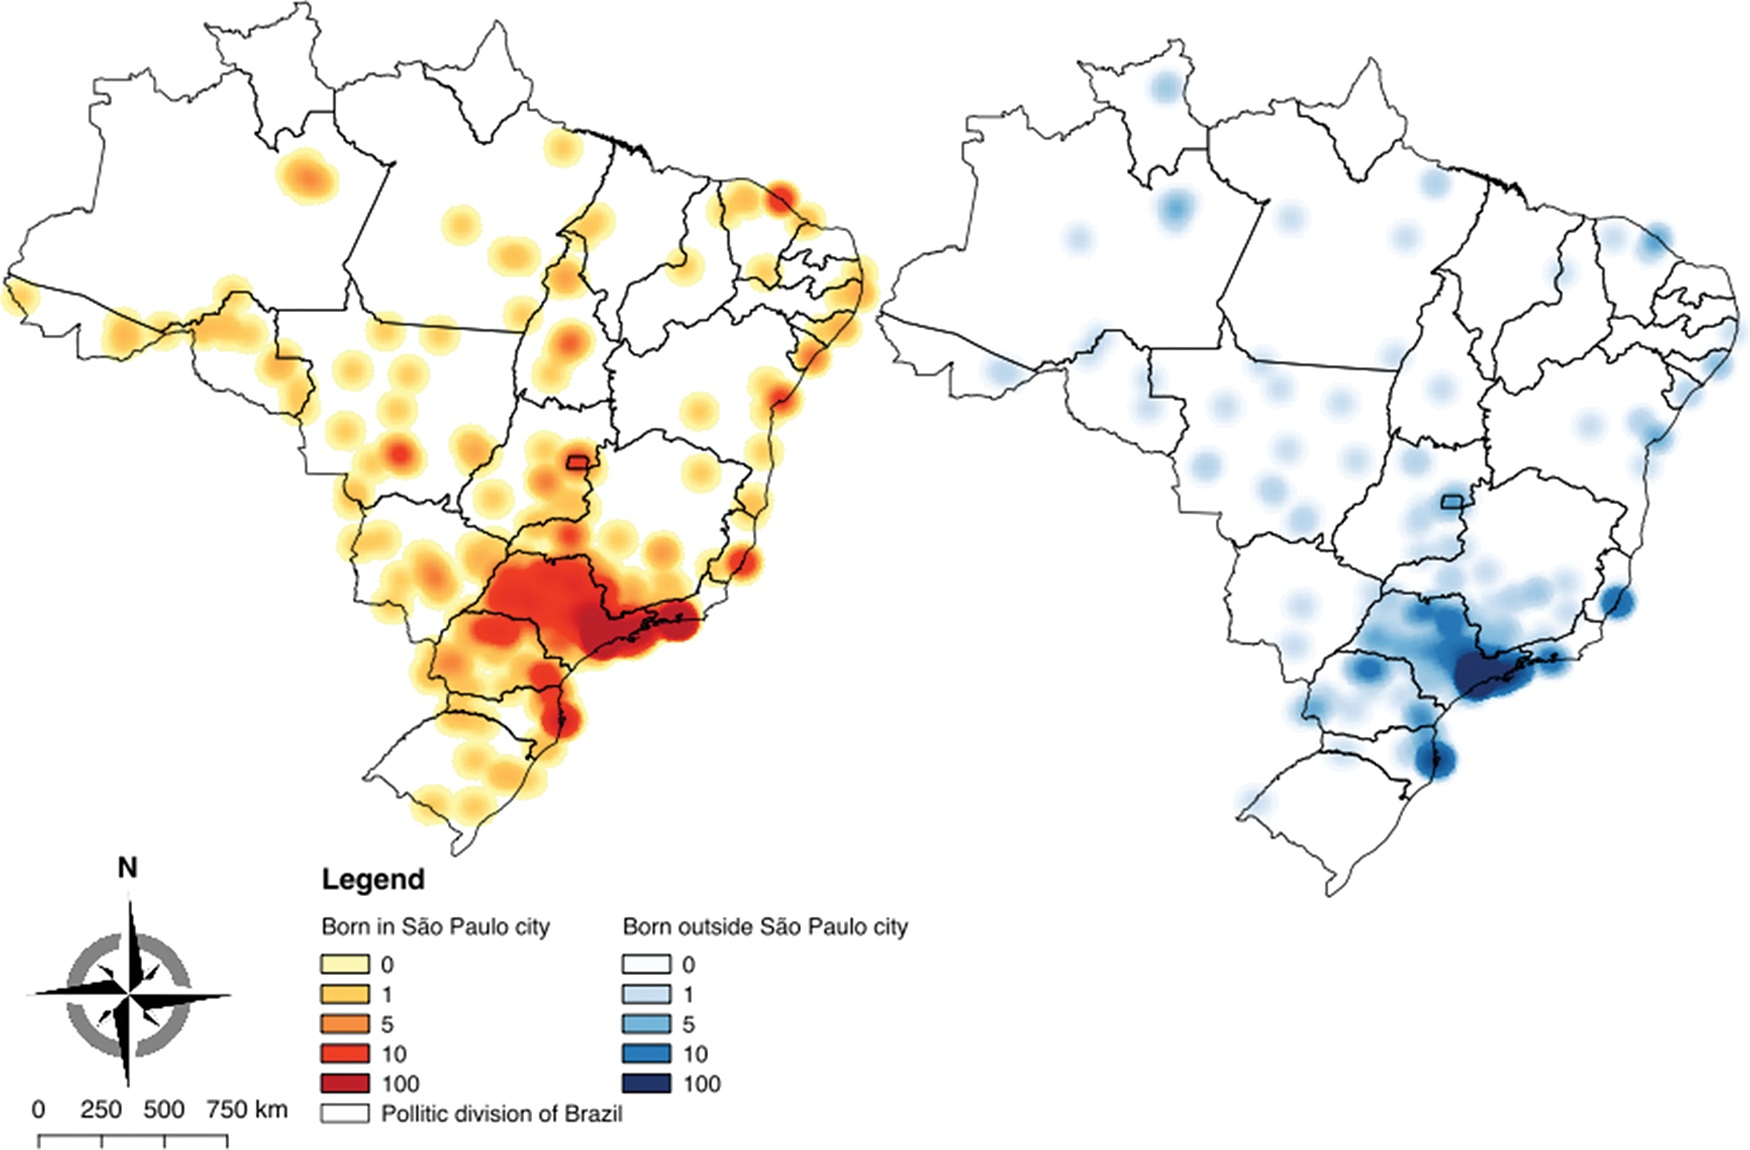 Kernel maps showing the geographic distribution of physicians who graduated from FMUSP.